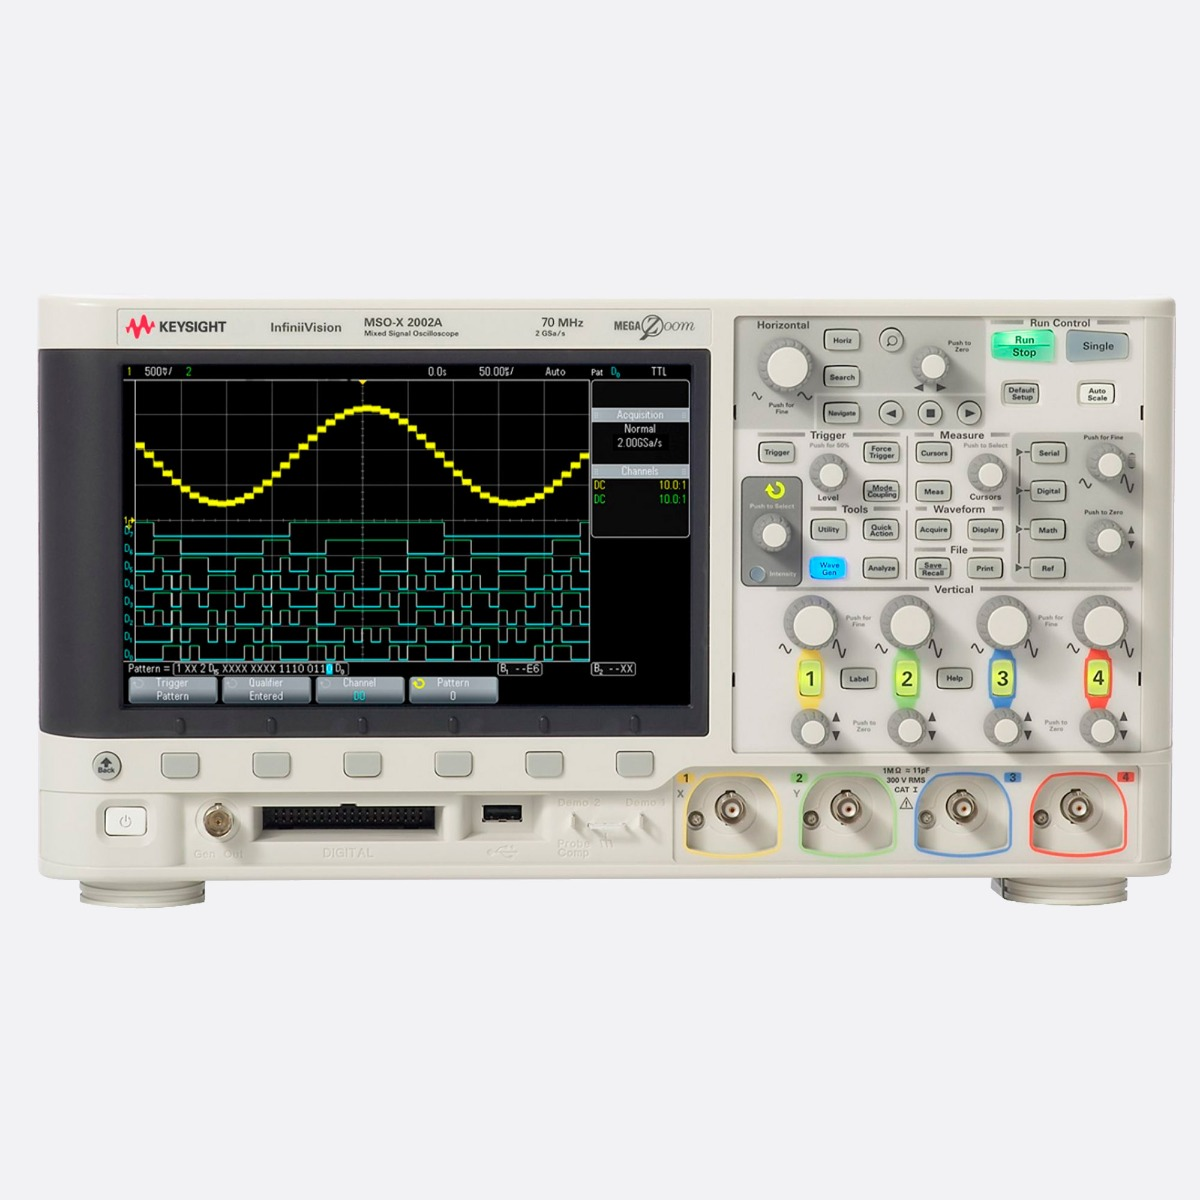 Keysight_MSOX2002A_front_Ccontrols